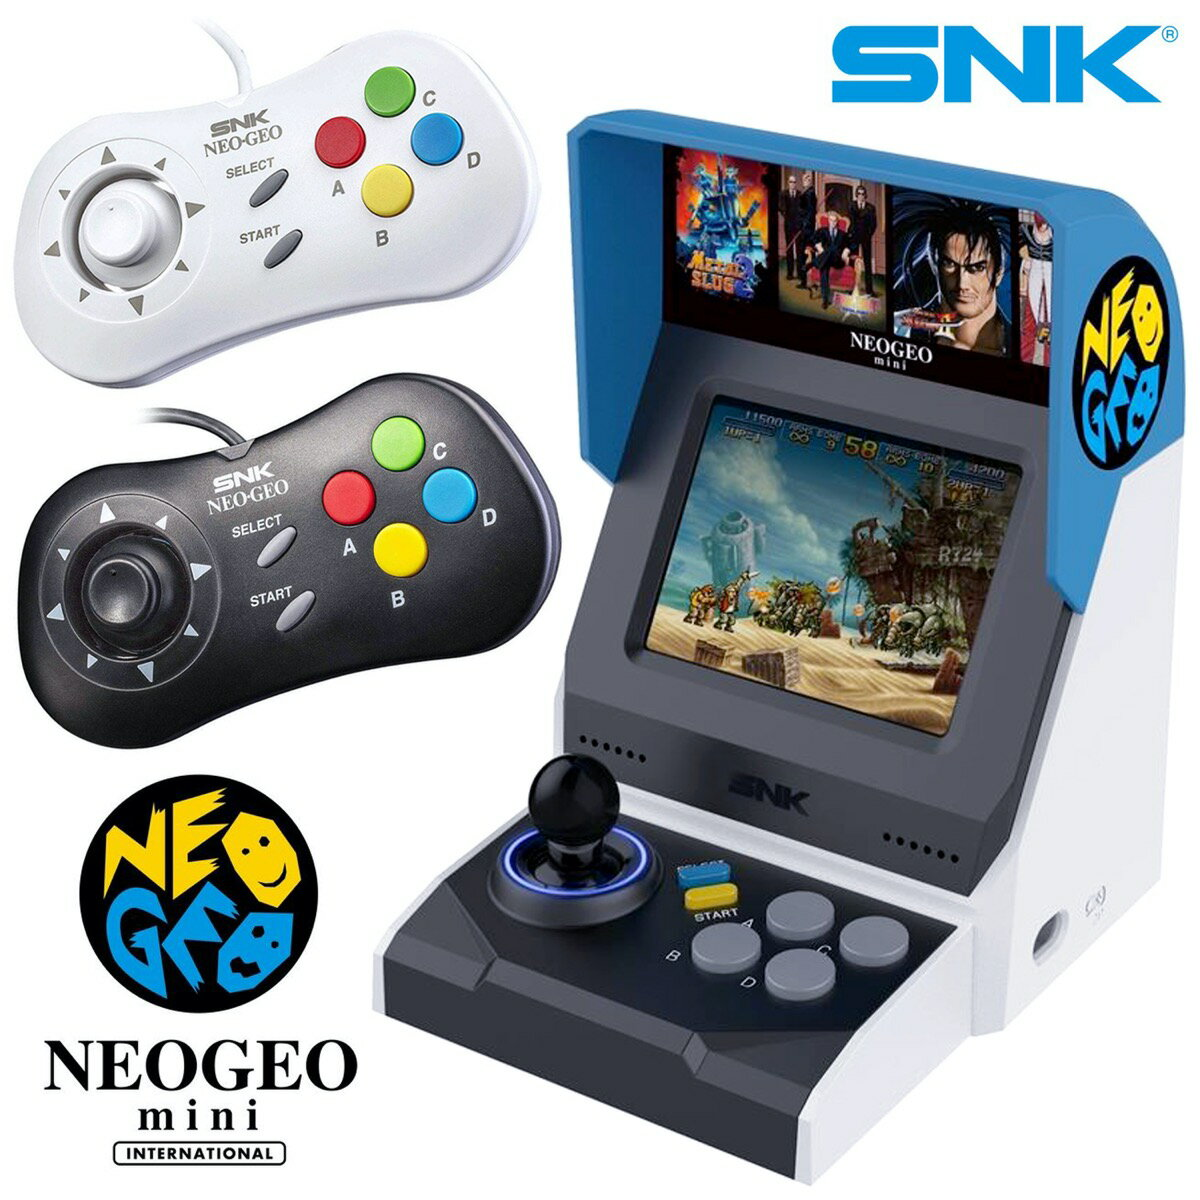 テレビゲーム, その他 NEOGEO mini International 2 40 PAD SNK (SG)